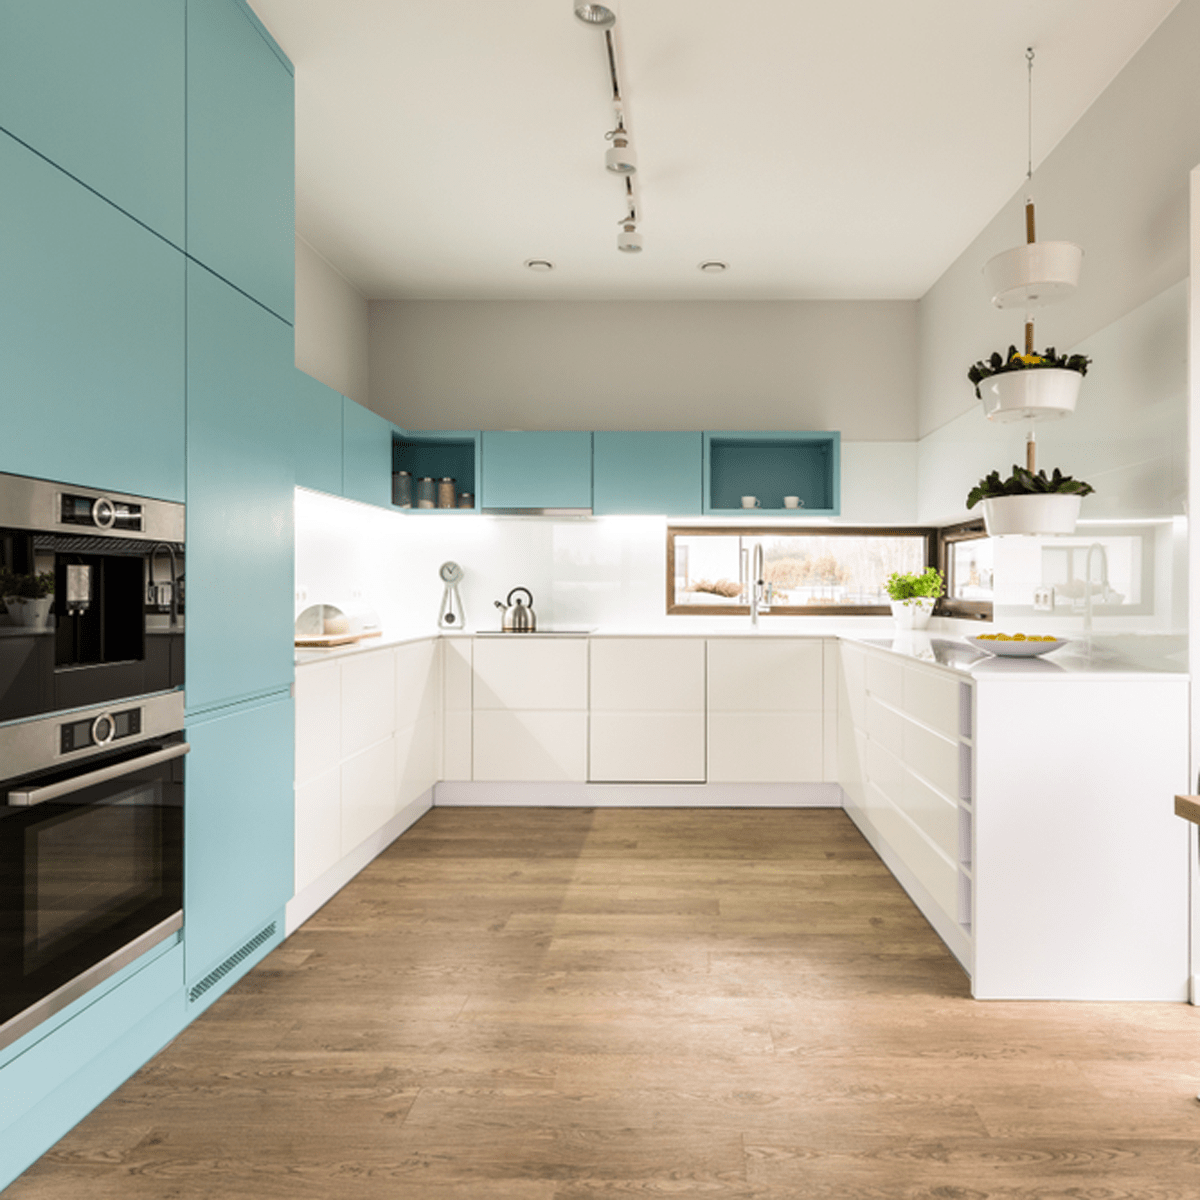 10 kitchen cabinetry trends to embrace (or avoid) in 2018 | the